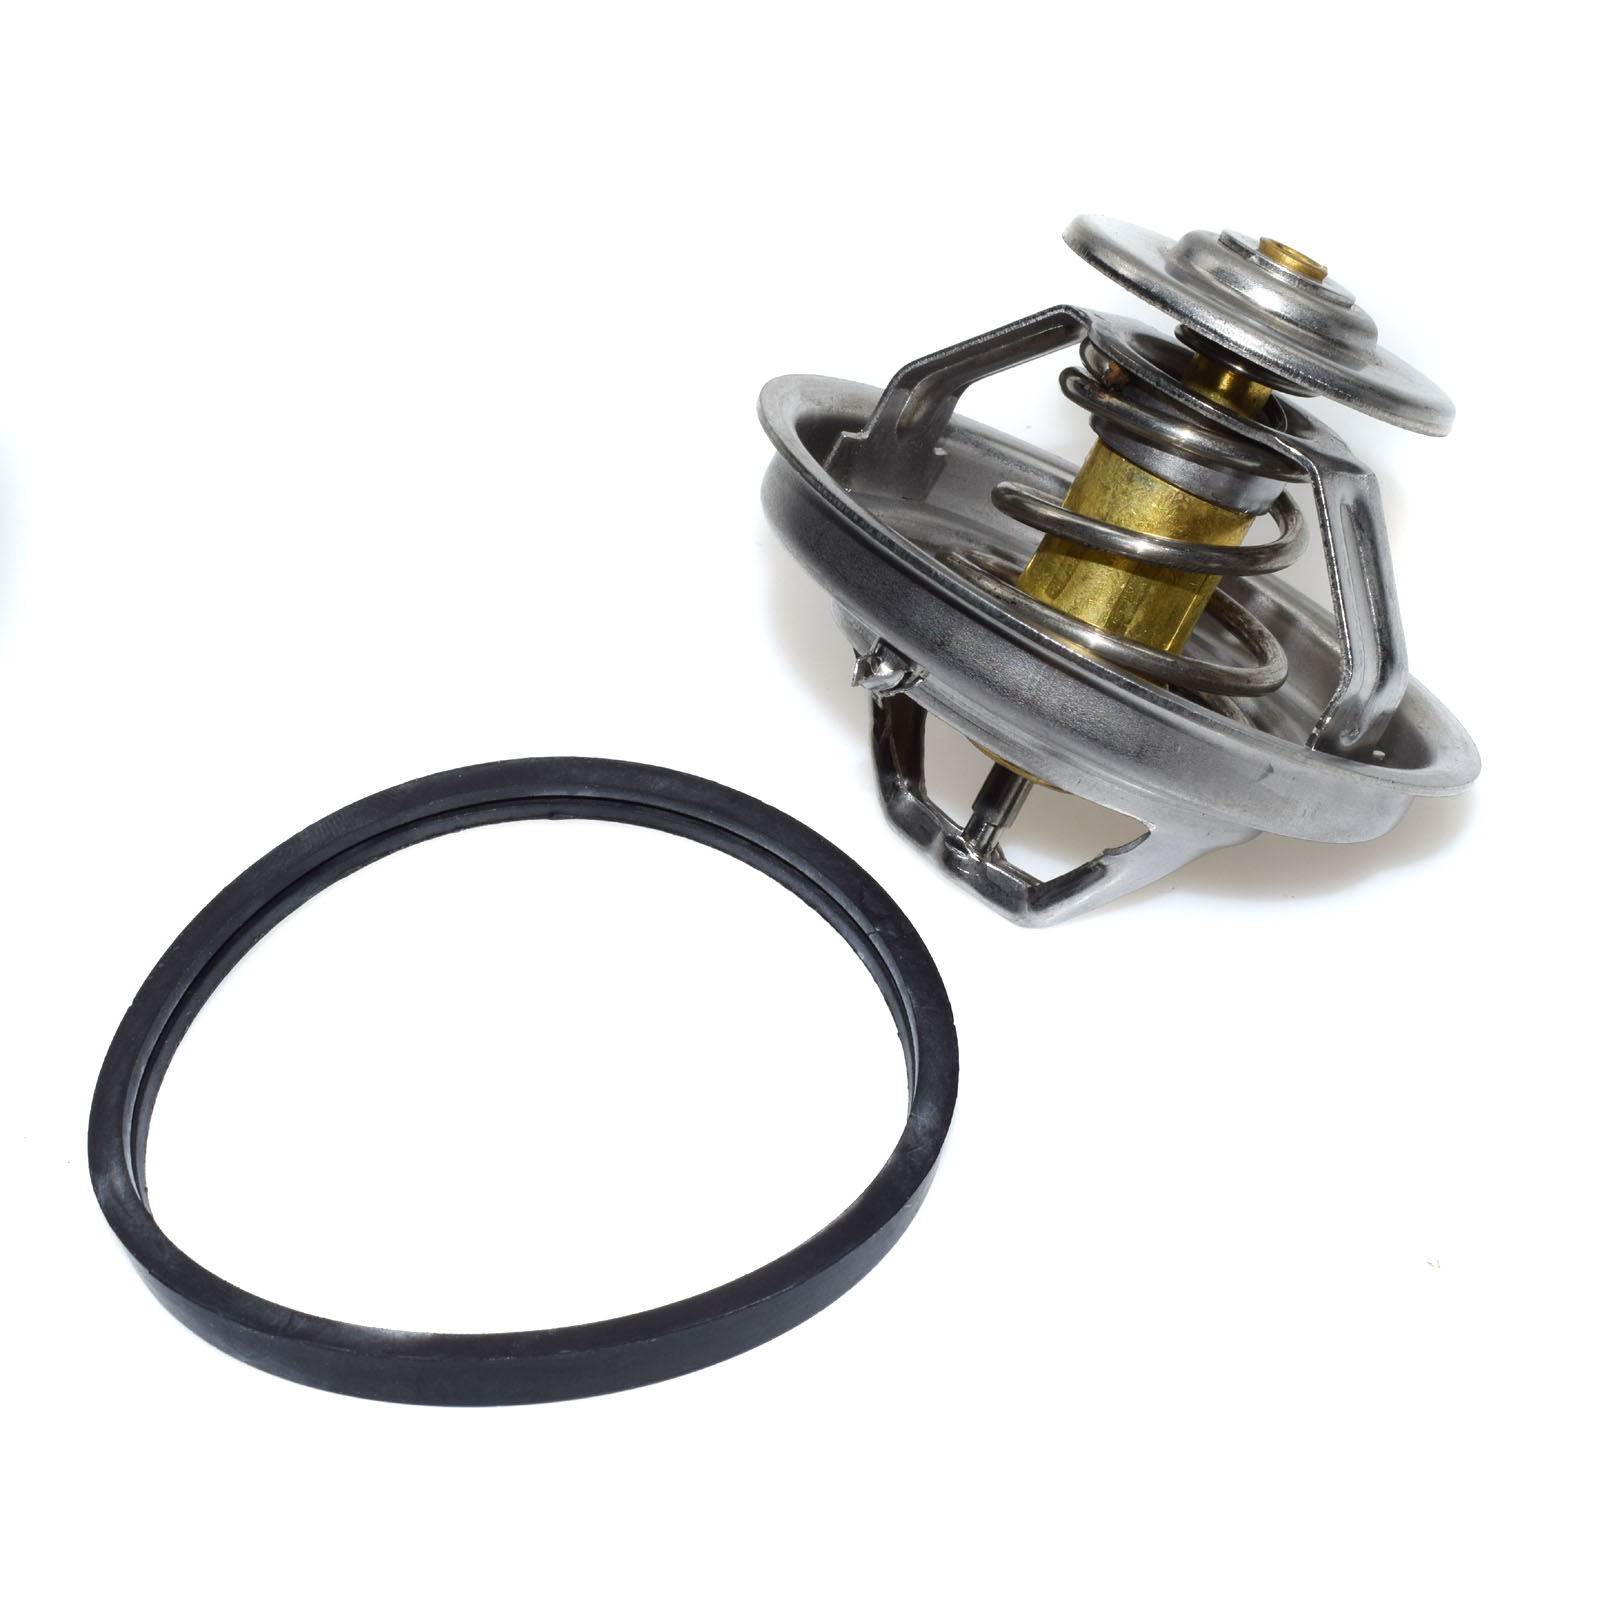 Tuto-remplacement-thermostat-sur-Audi-A4-B5-3.jpg